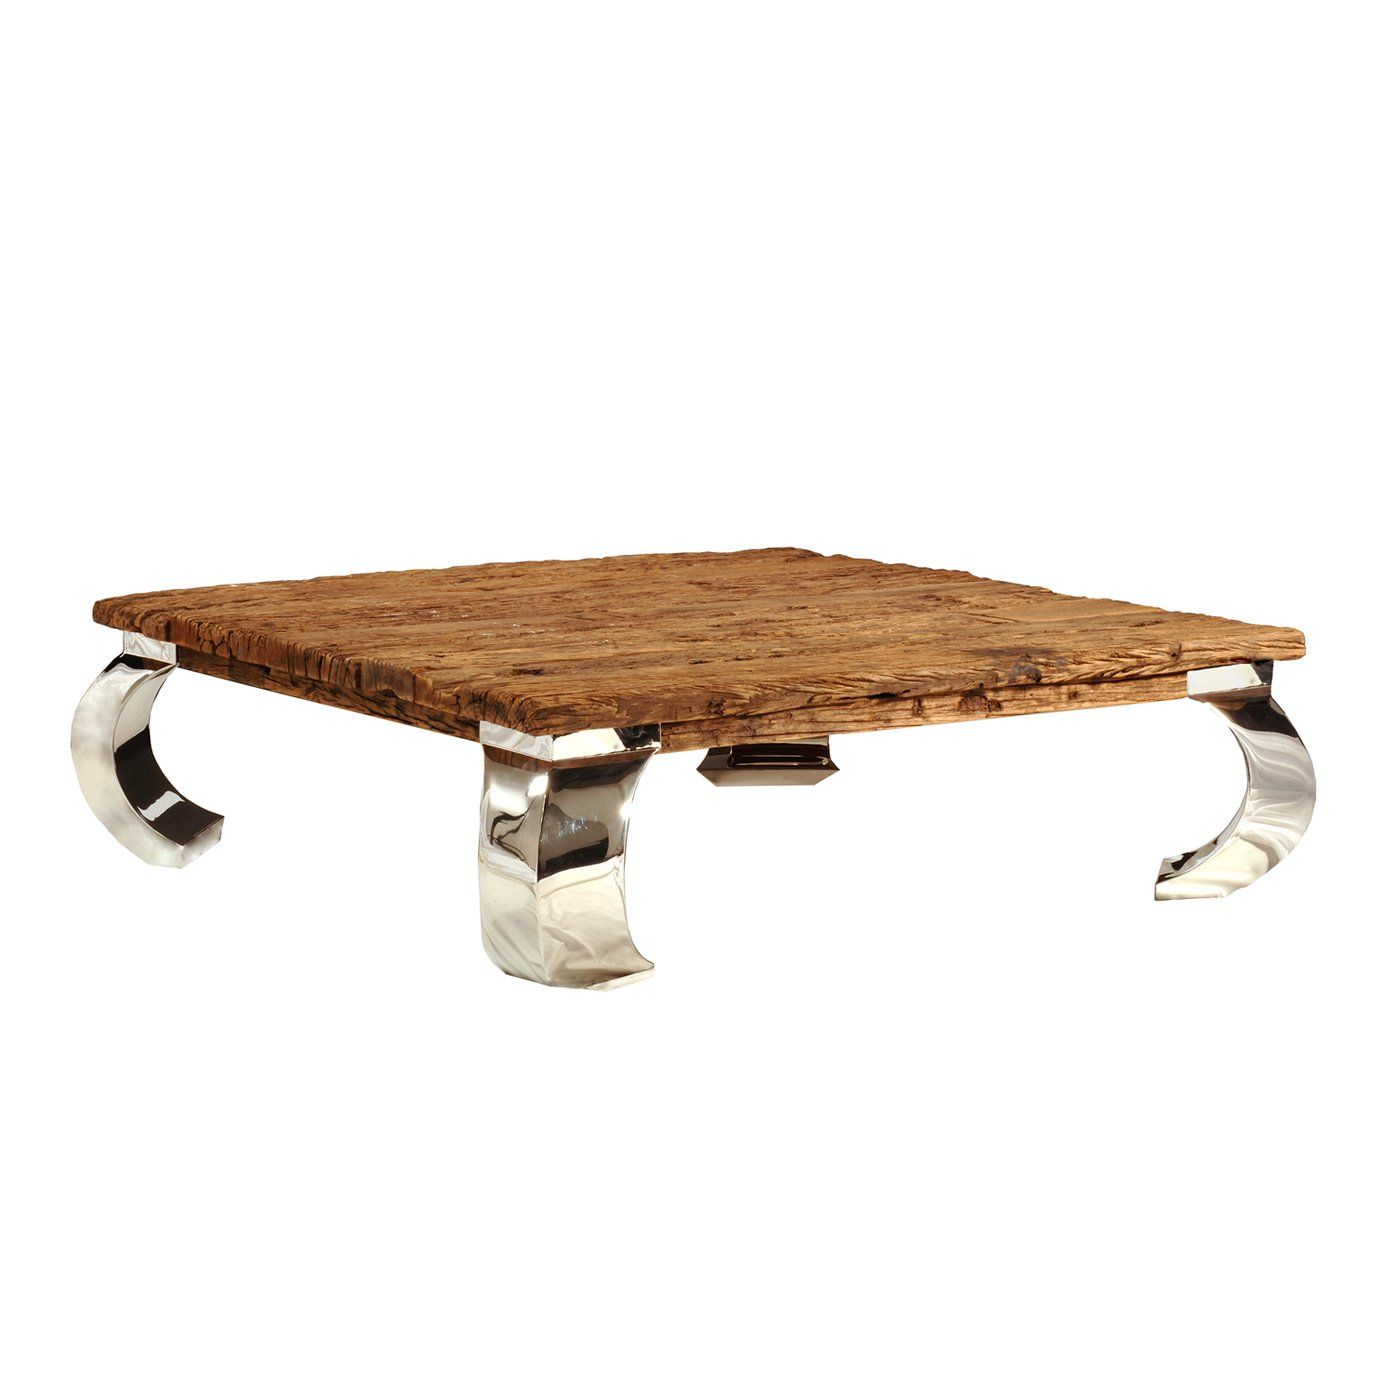 Brownstone vr502 verona coffee table atg stores 2013 home brownstone vr502 verona coffee table atg stores geotapseo Image collections